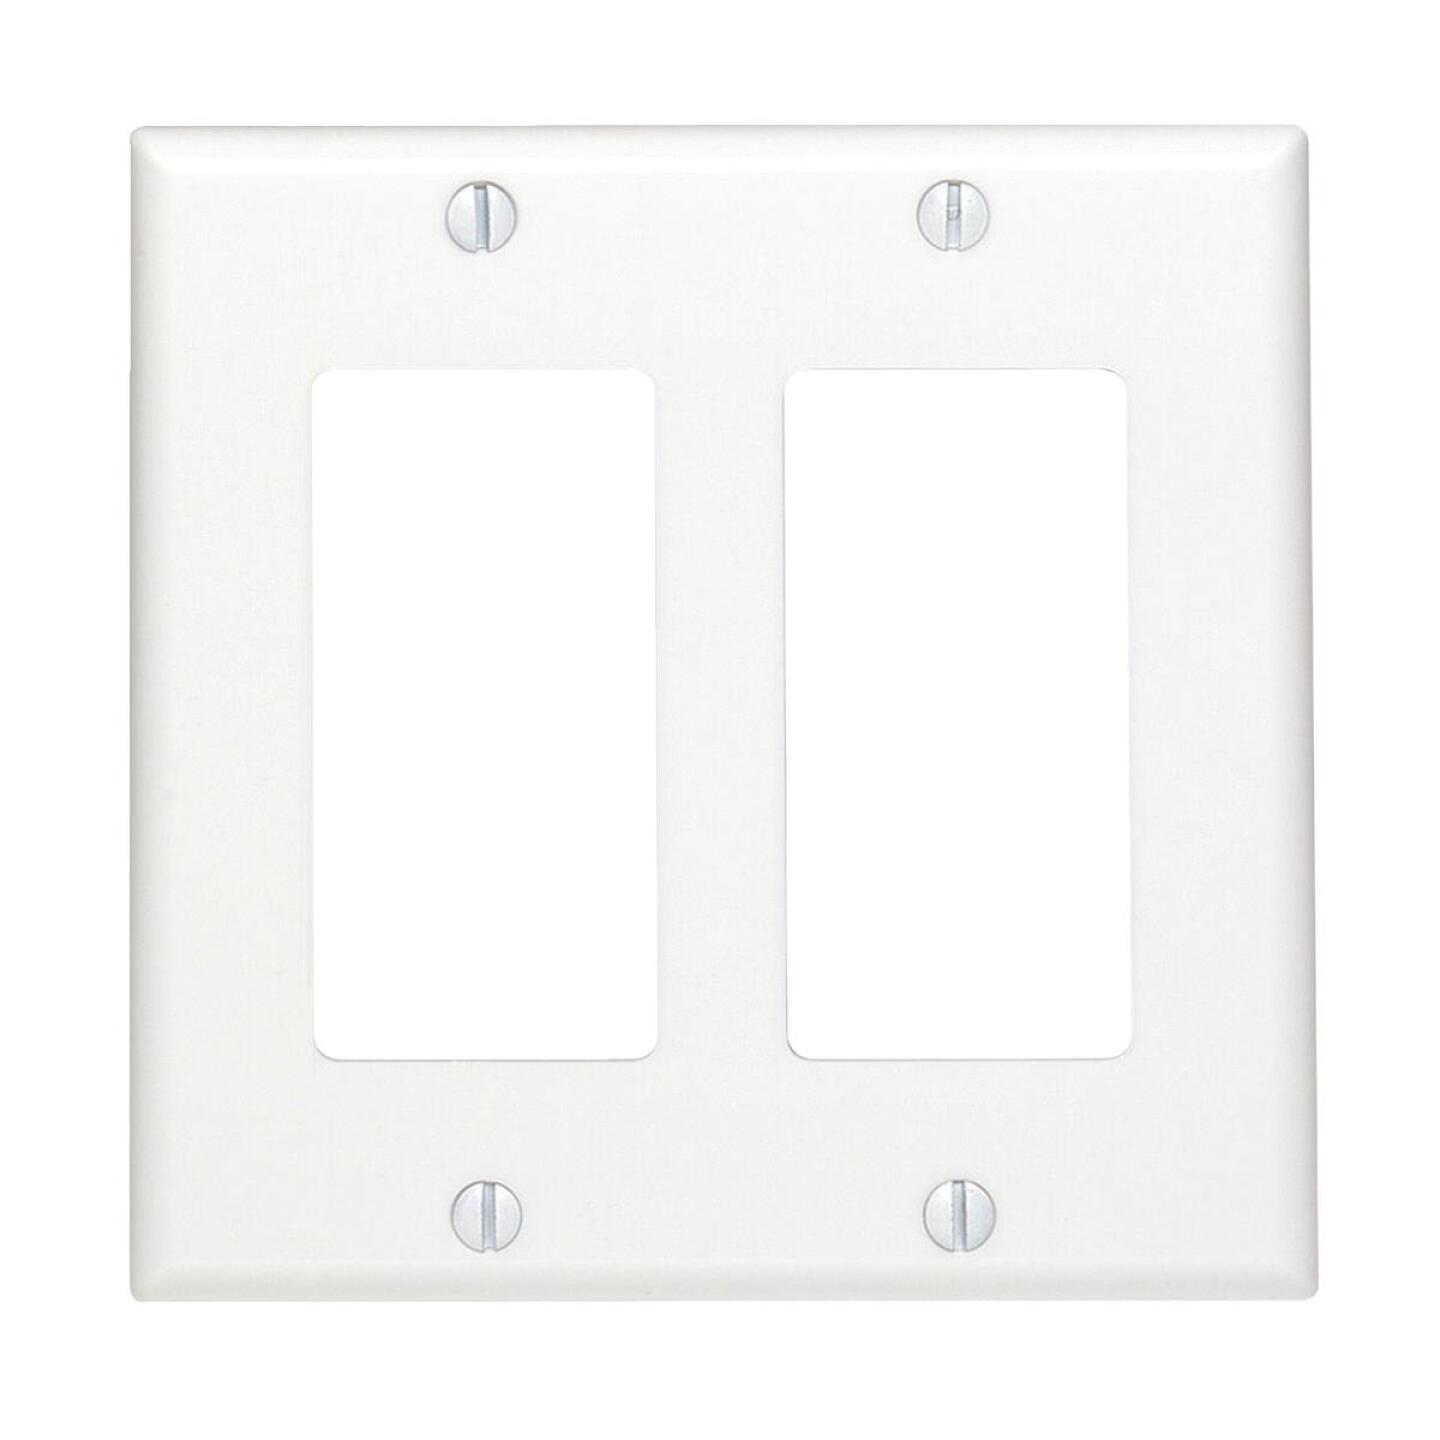 Leviton Decora 2-Gang Smooth Plastic Rocker Decorator Wall Plate, White Image 1